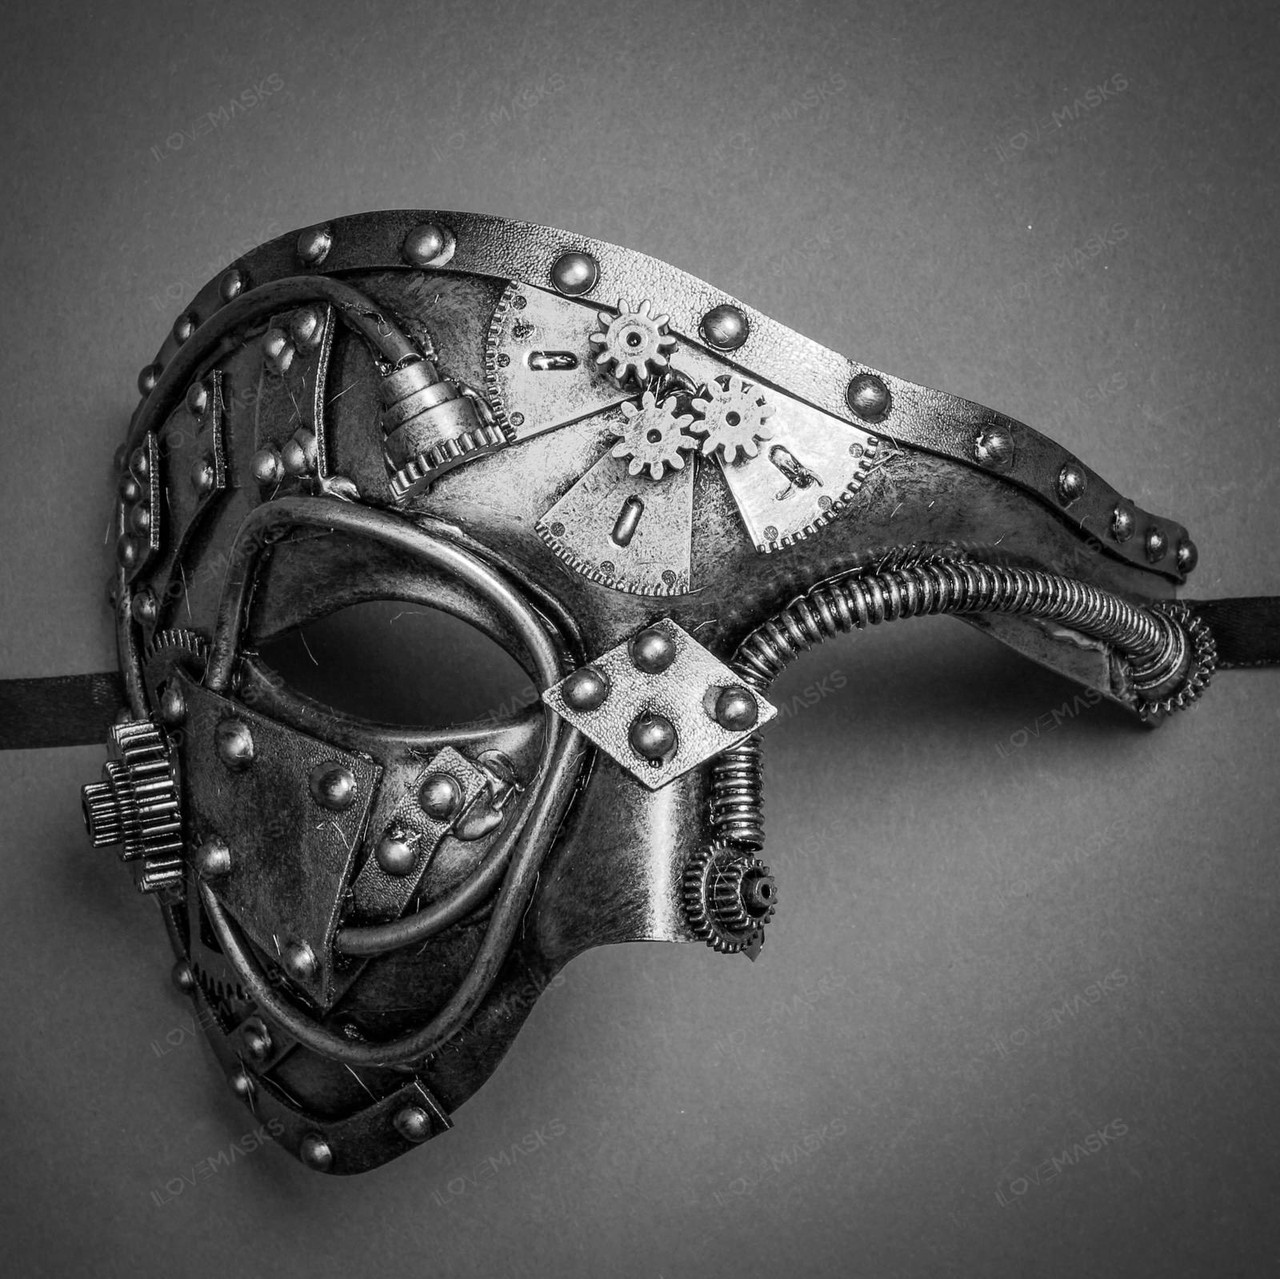 Masquerade Mask New Silver Steampunk Side Fan /& Spikes Goggle Halloween Costume